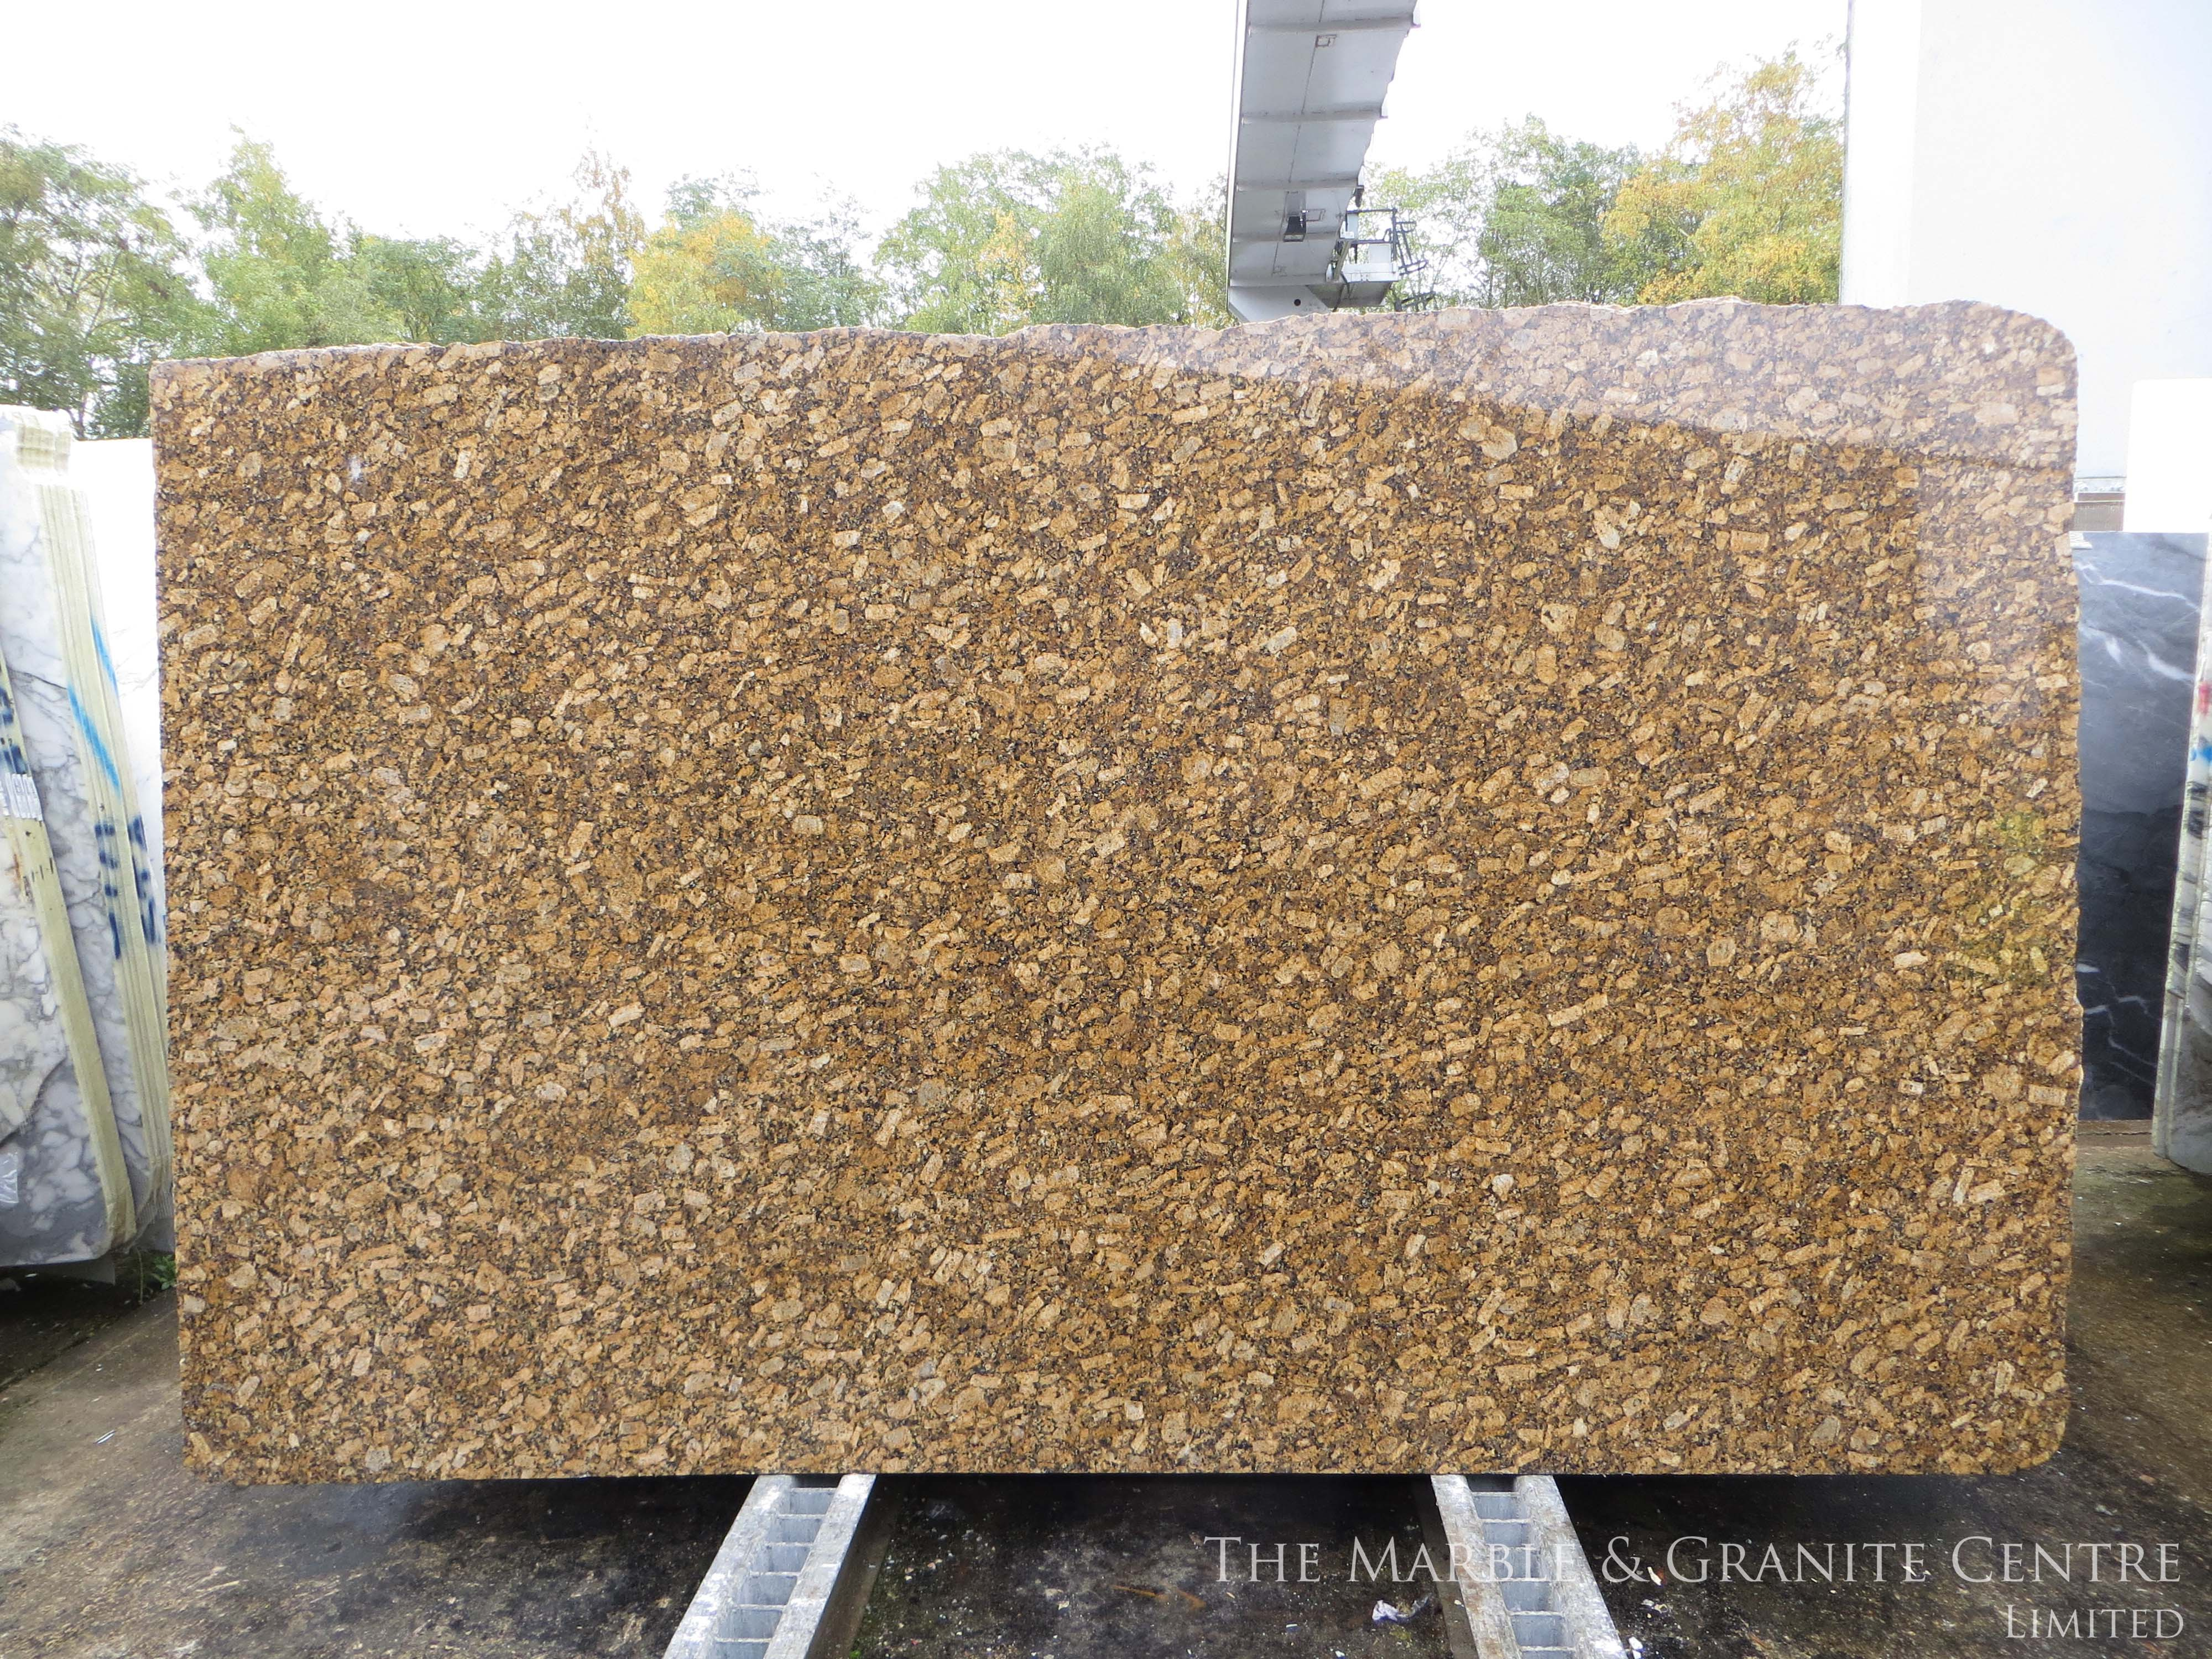 Granite Giallo Fiorito Polished 30 mm [1155]